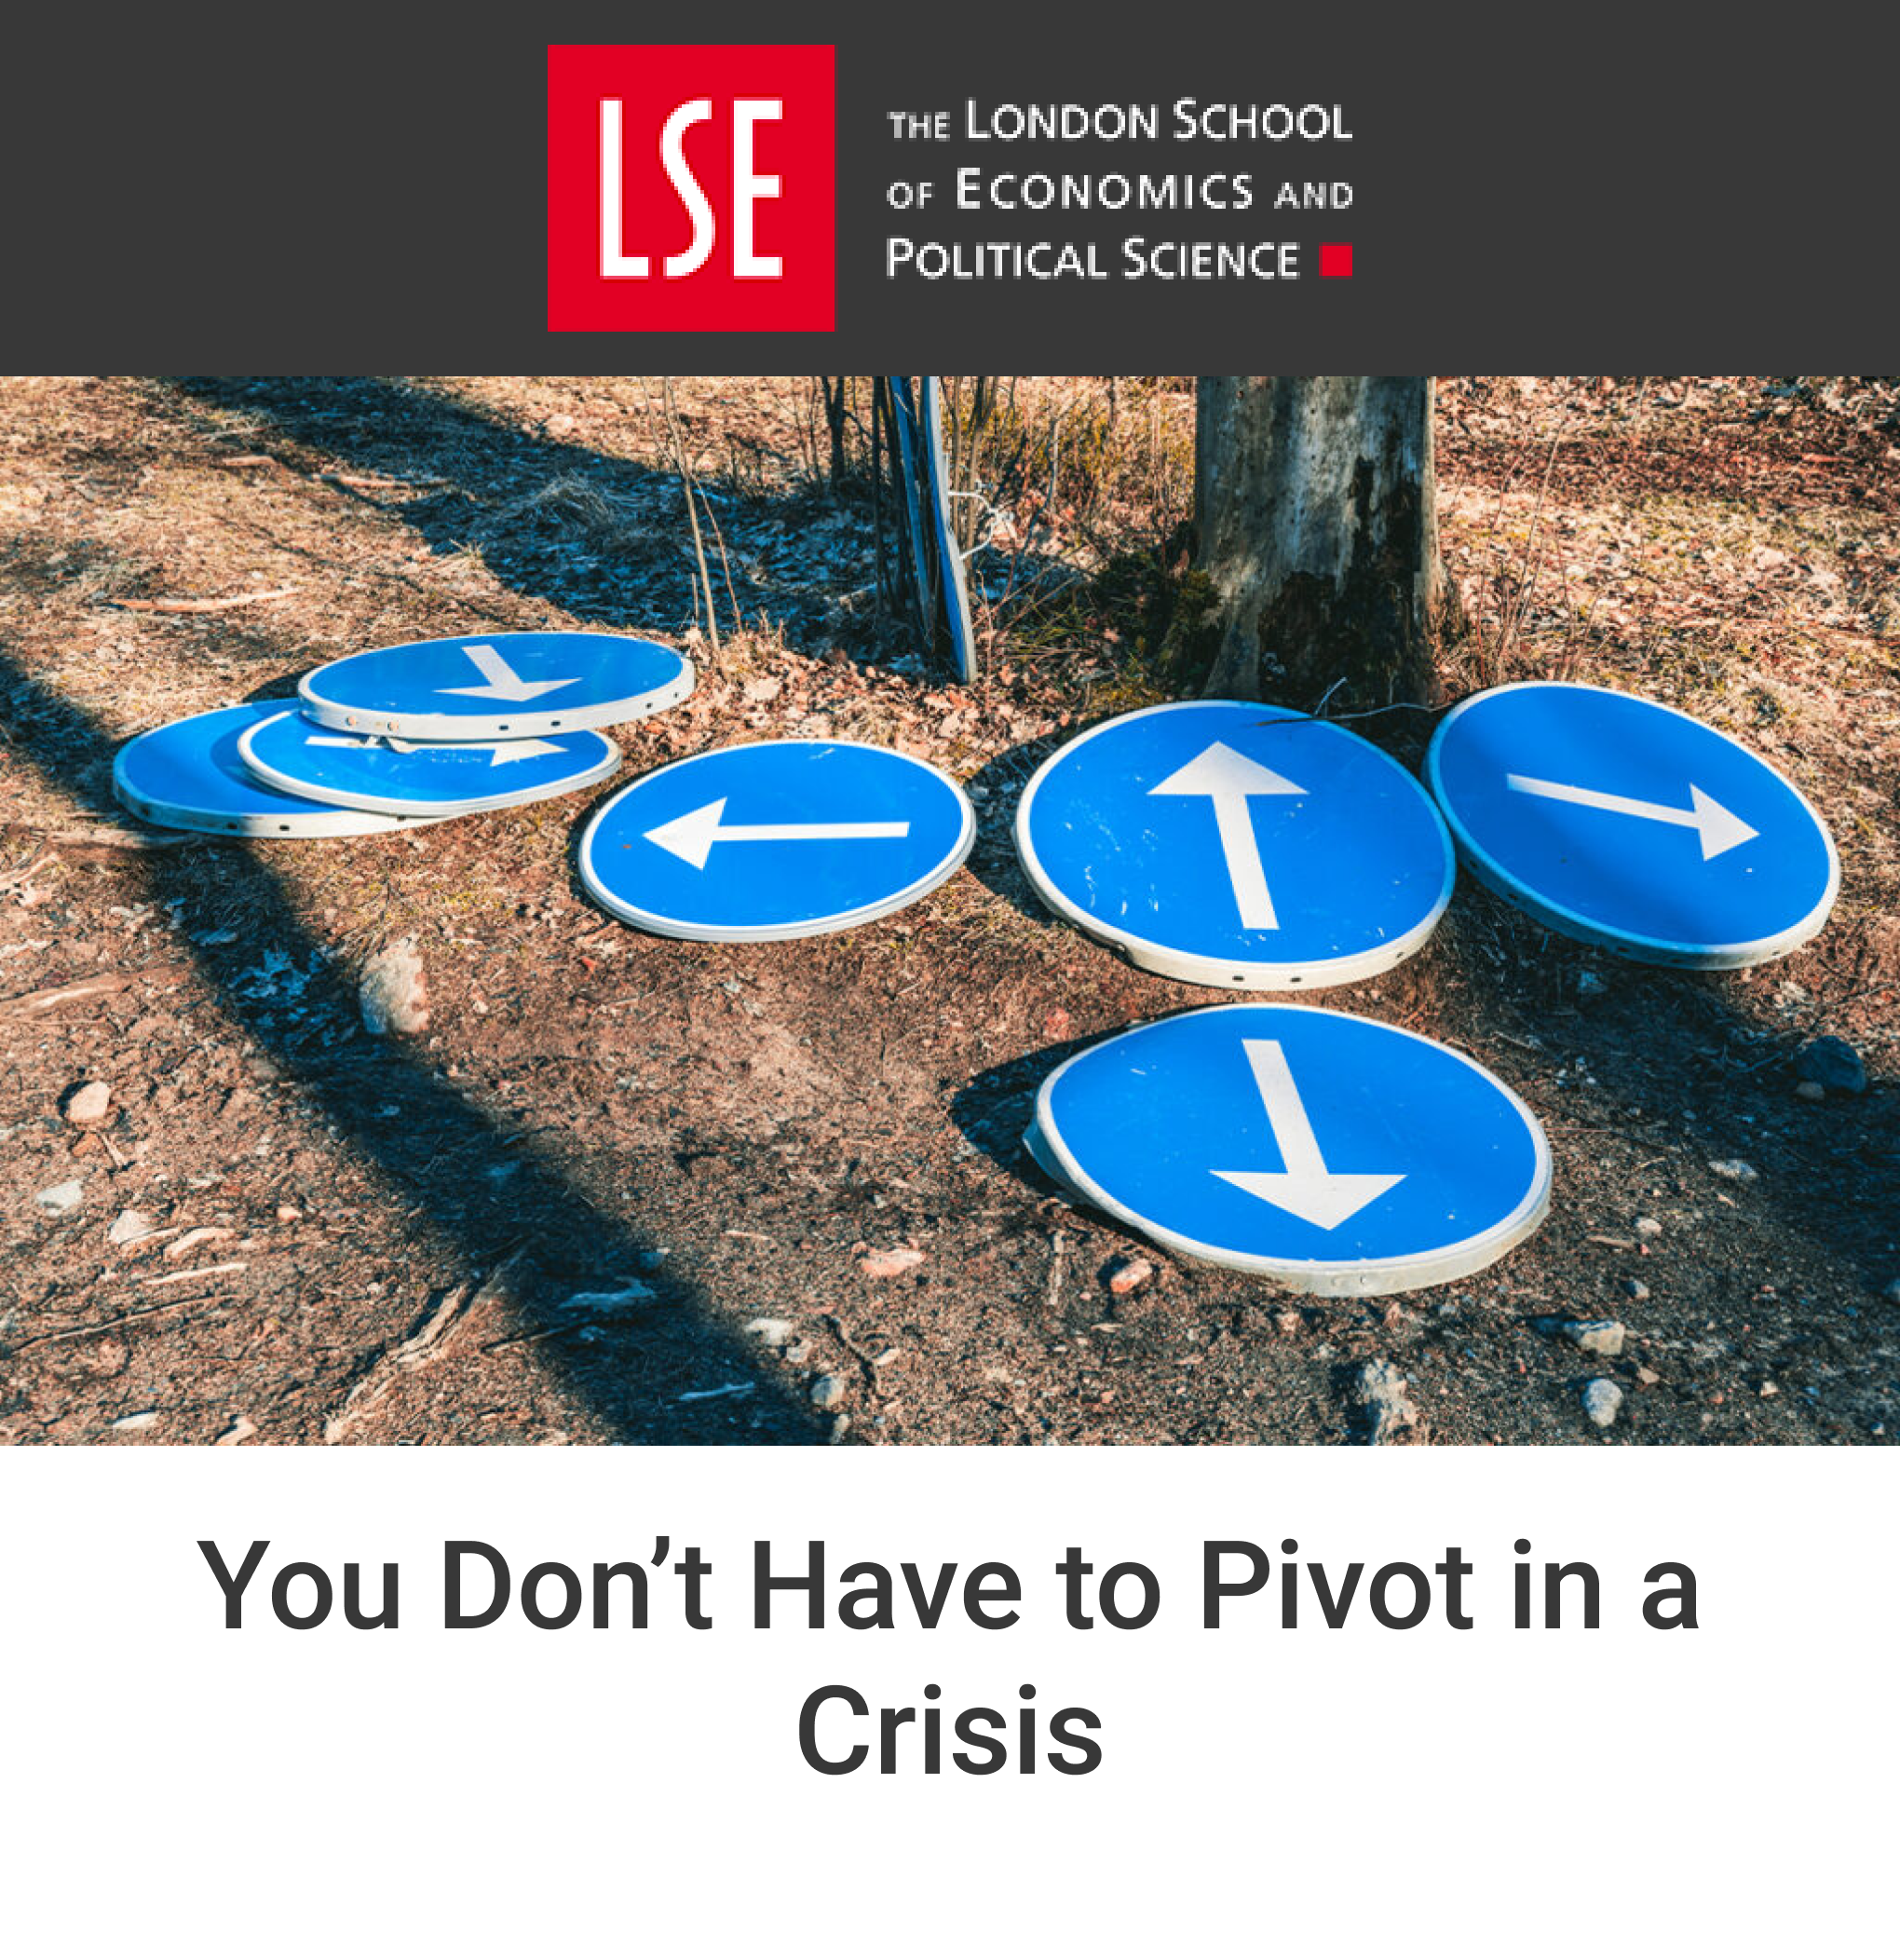 You Don't have Pivot in a Crisis